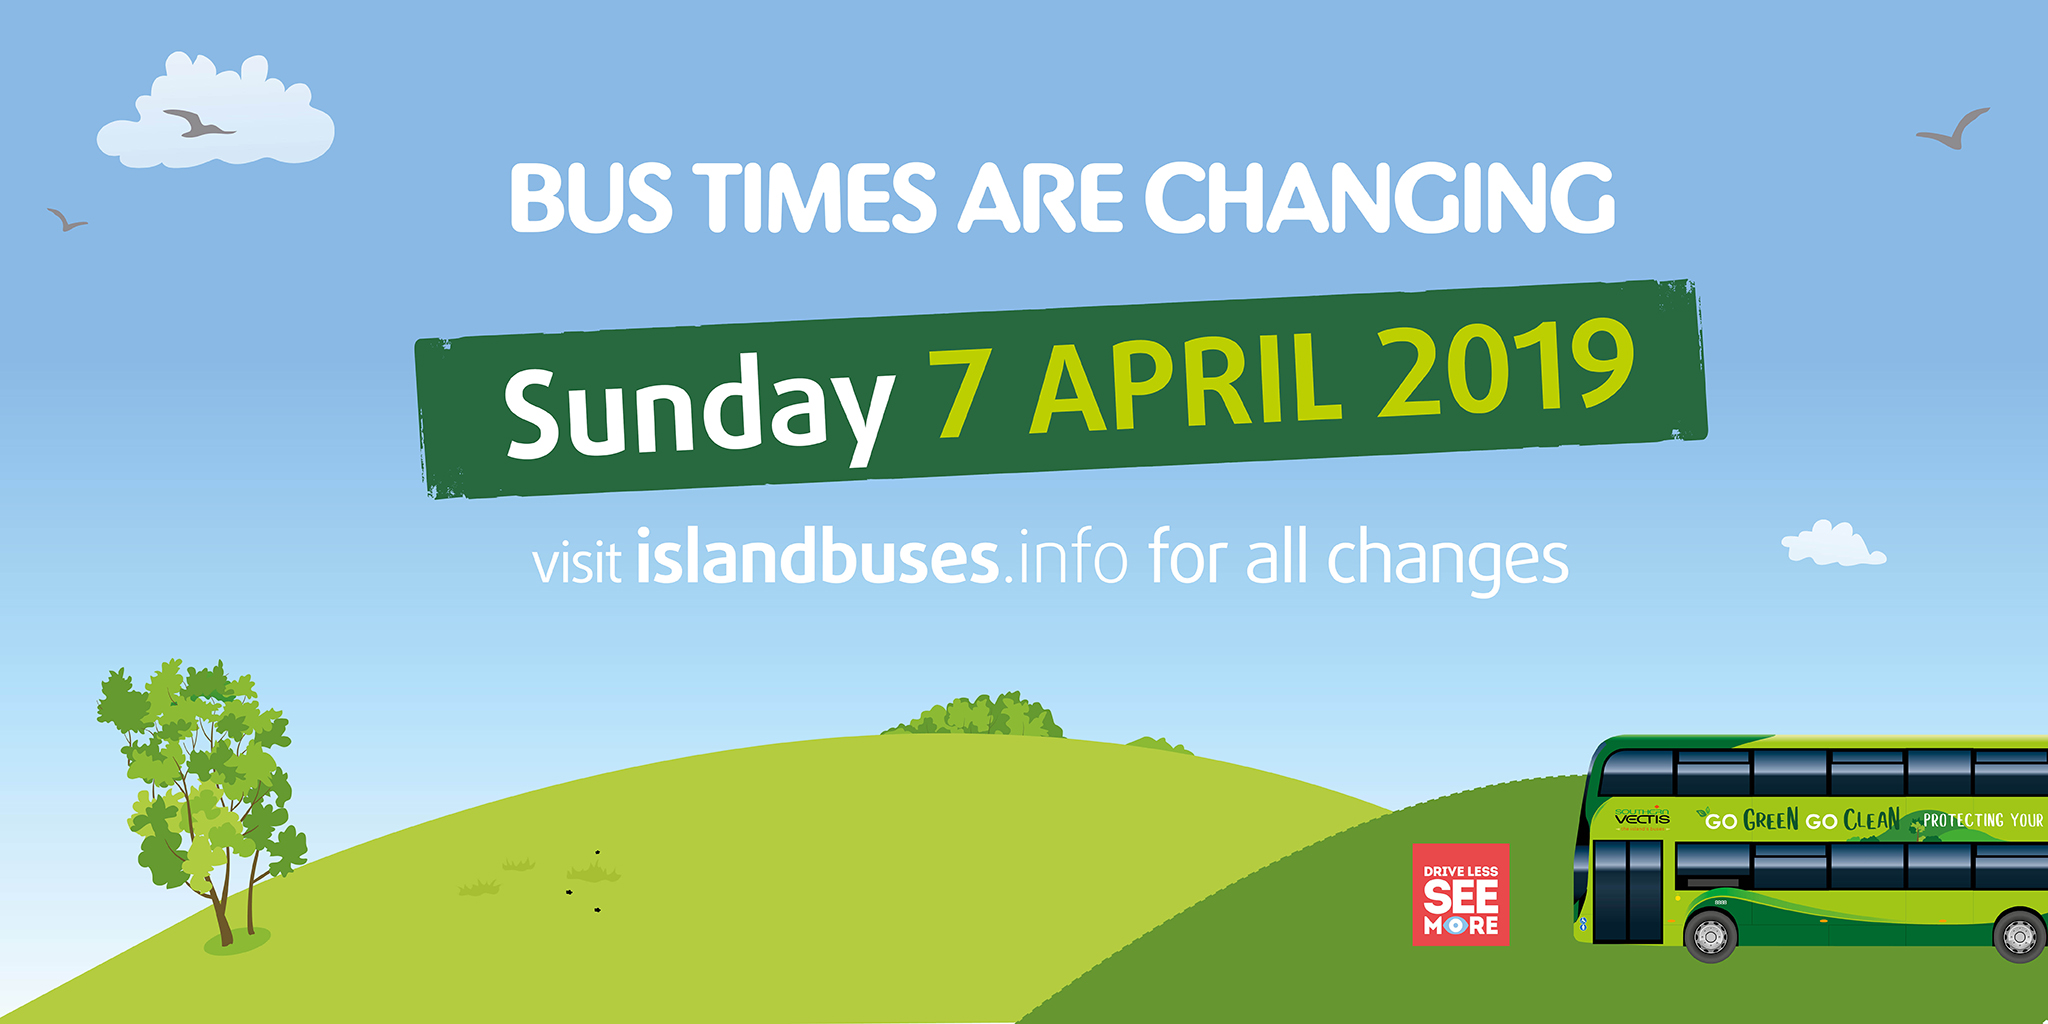 BUS TIMES ARE CHANGING